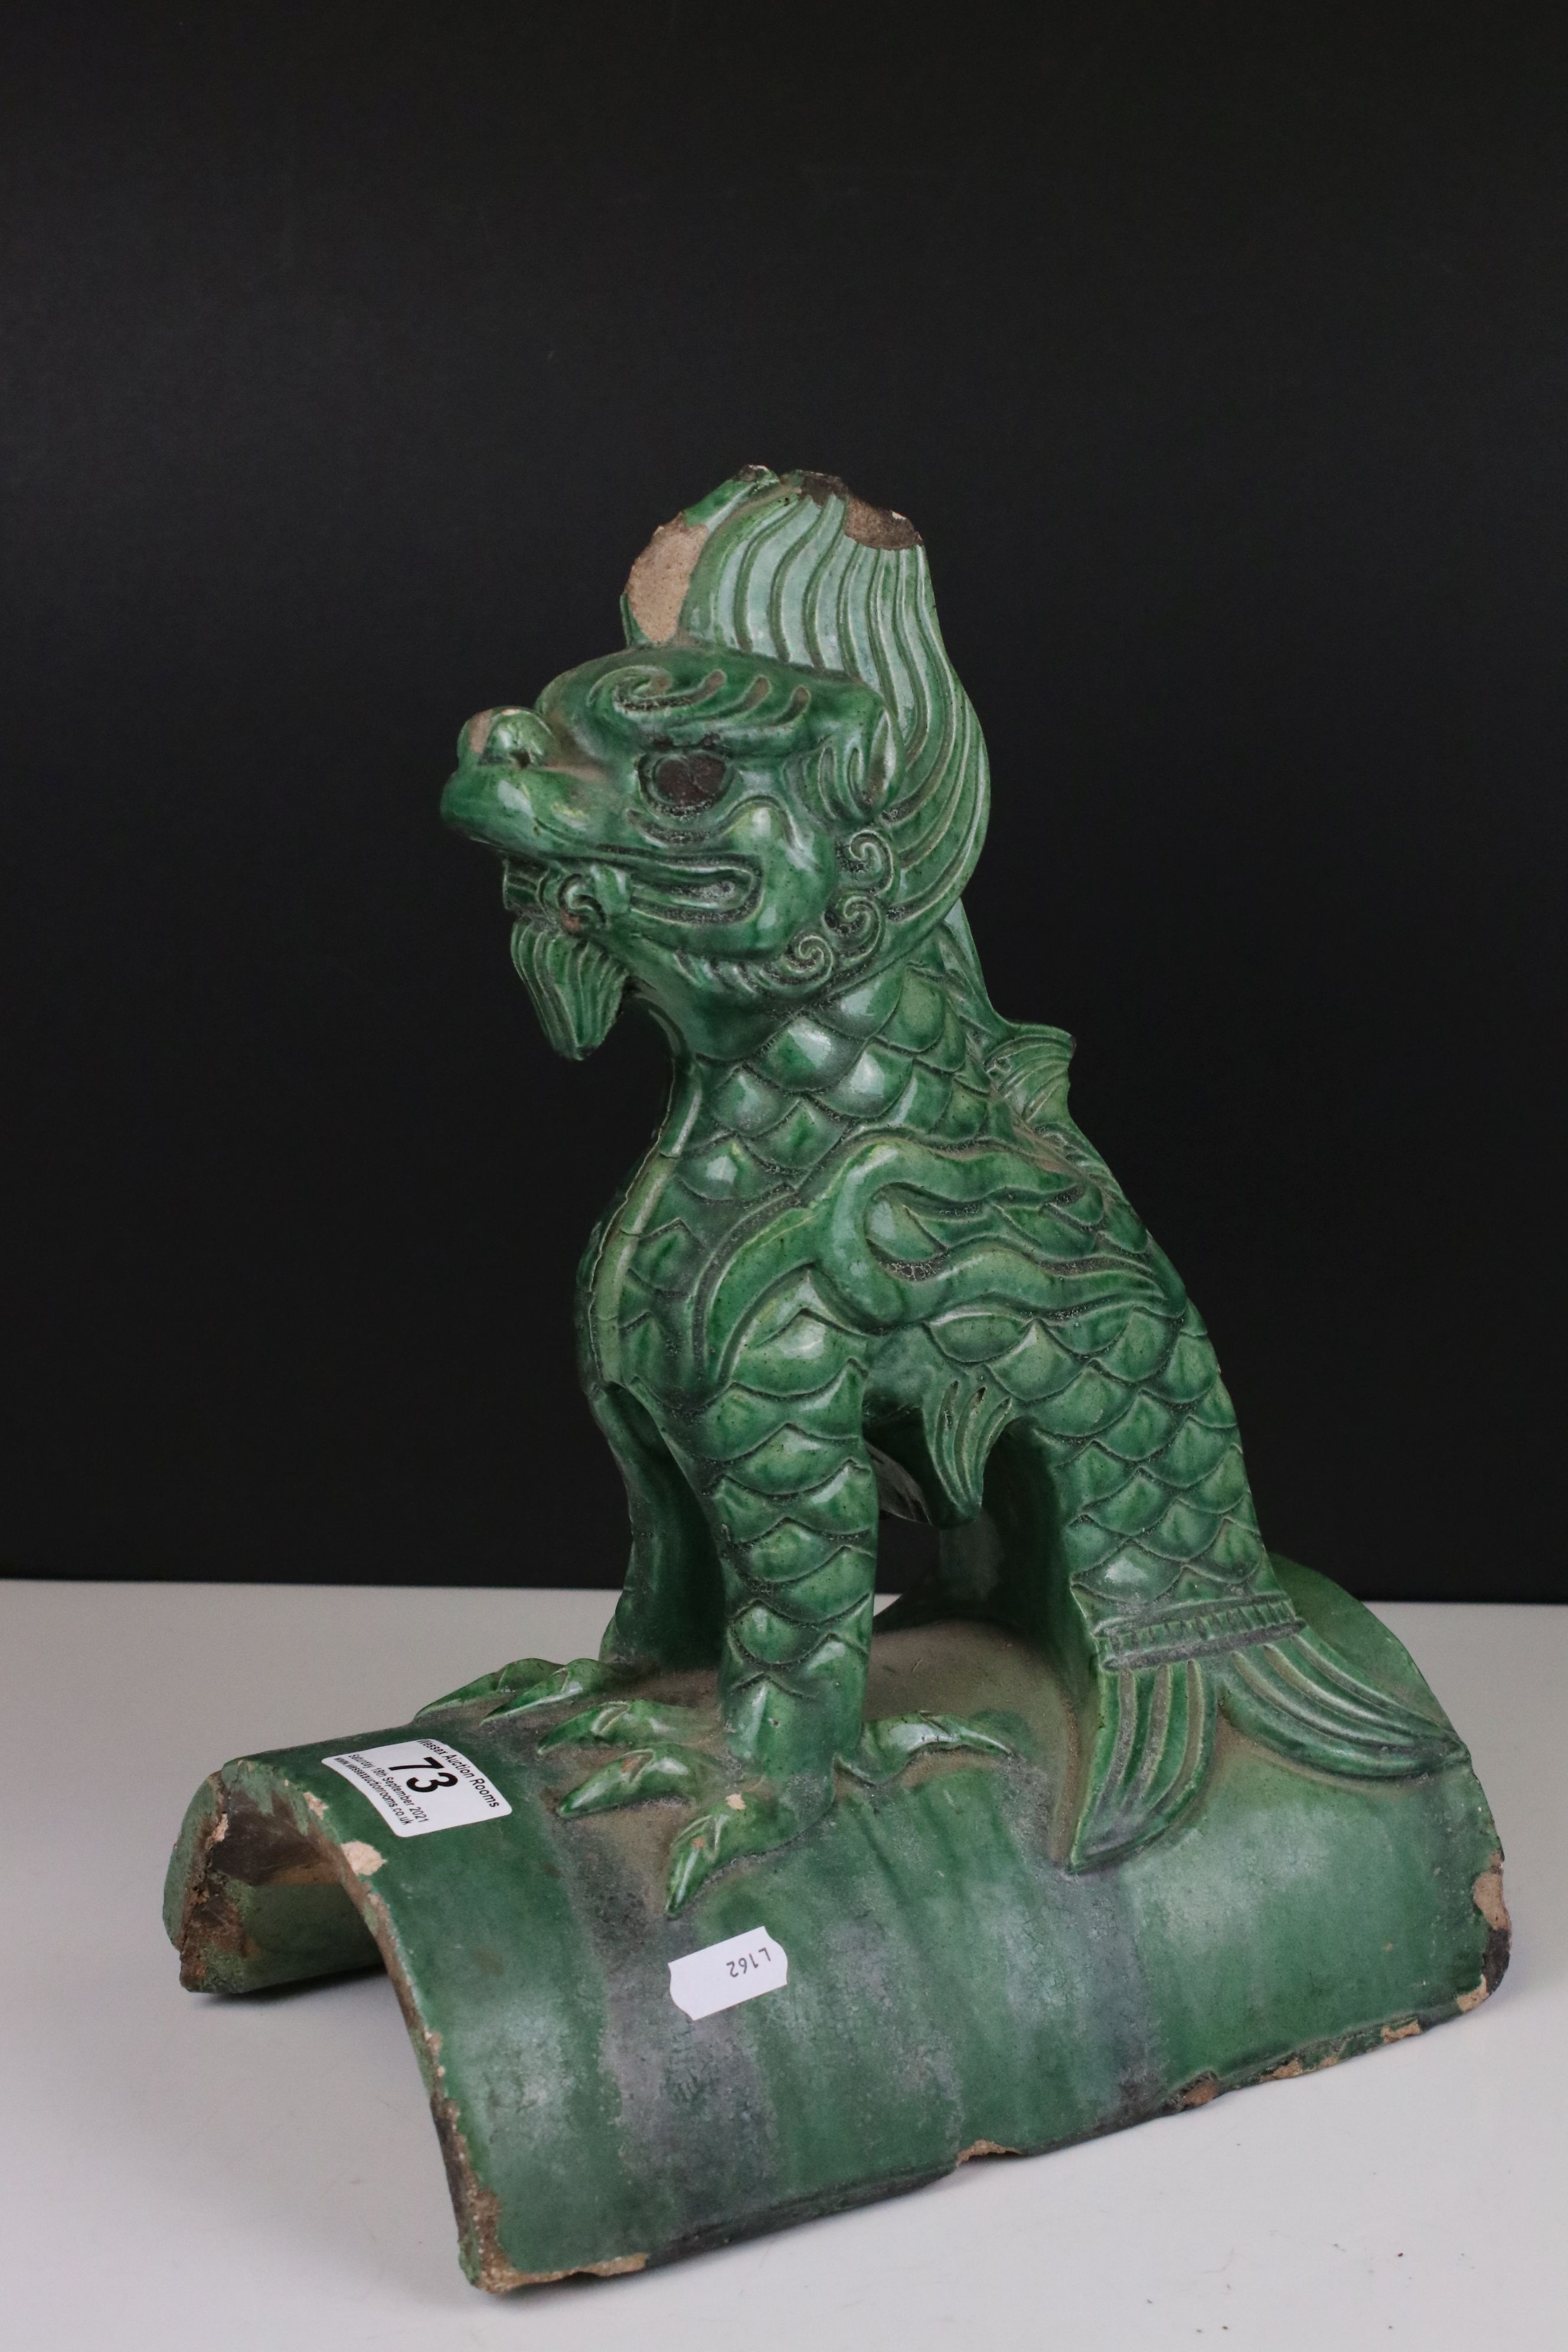 Chinese Green Glazed Pottery Roof Ridge Tile surmounted by a Mythical Creature, 34cms high